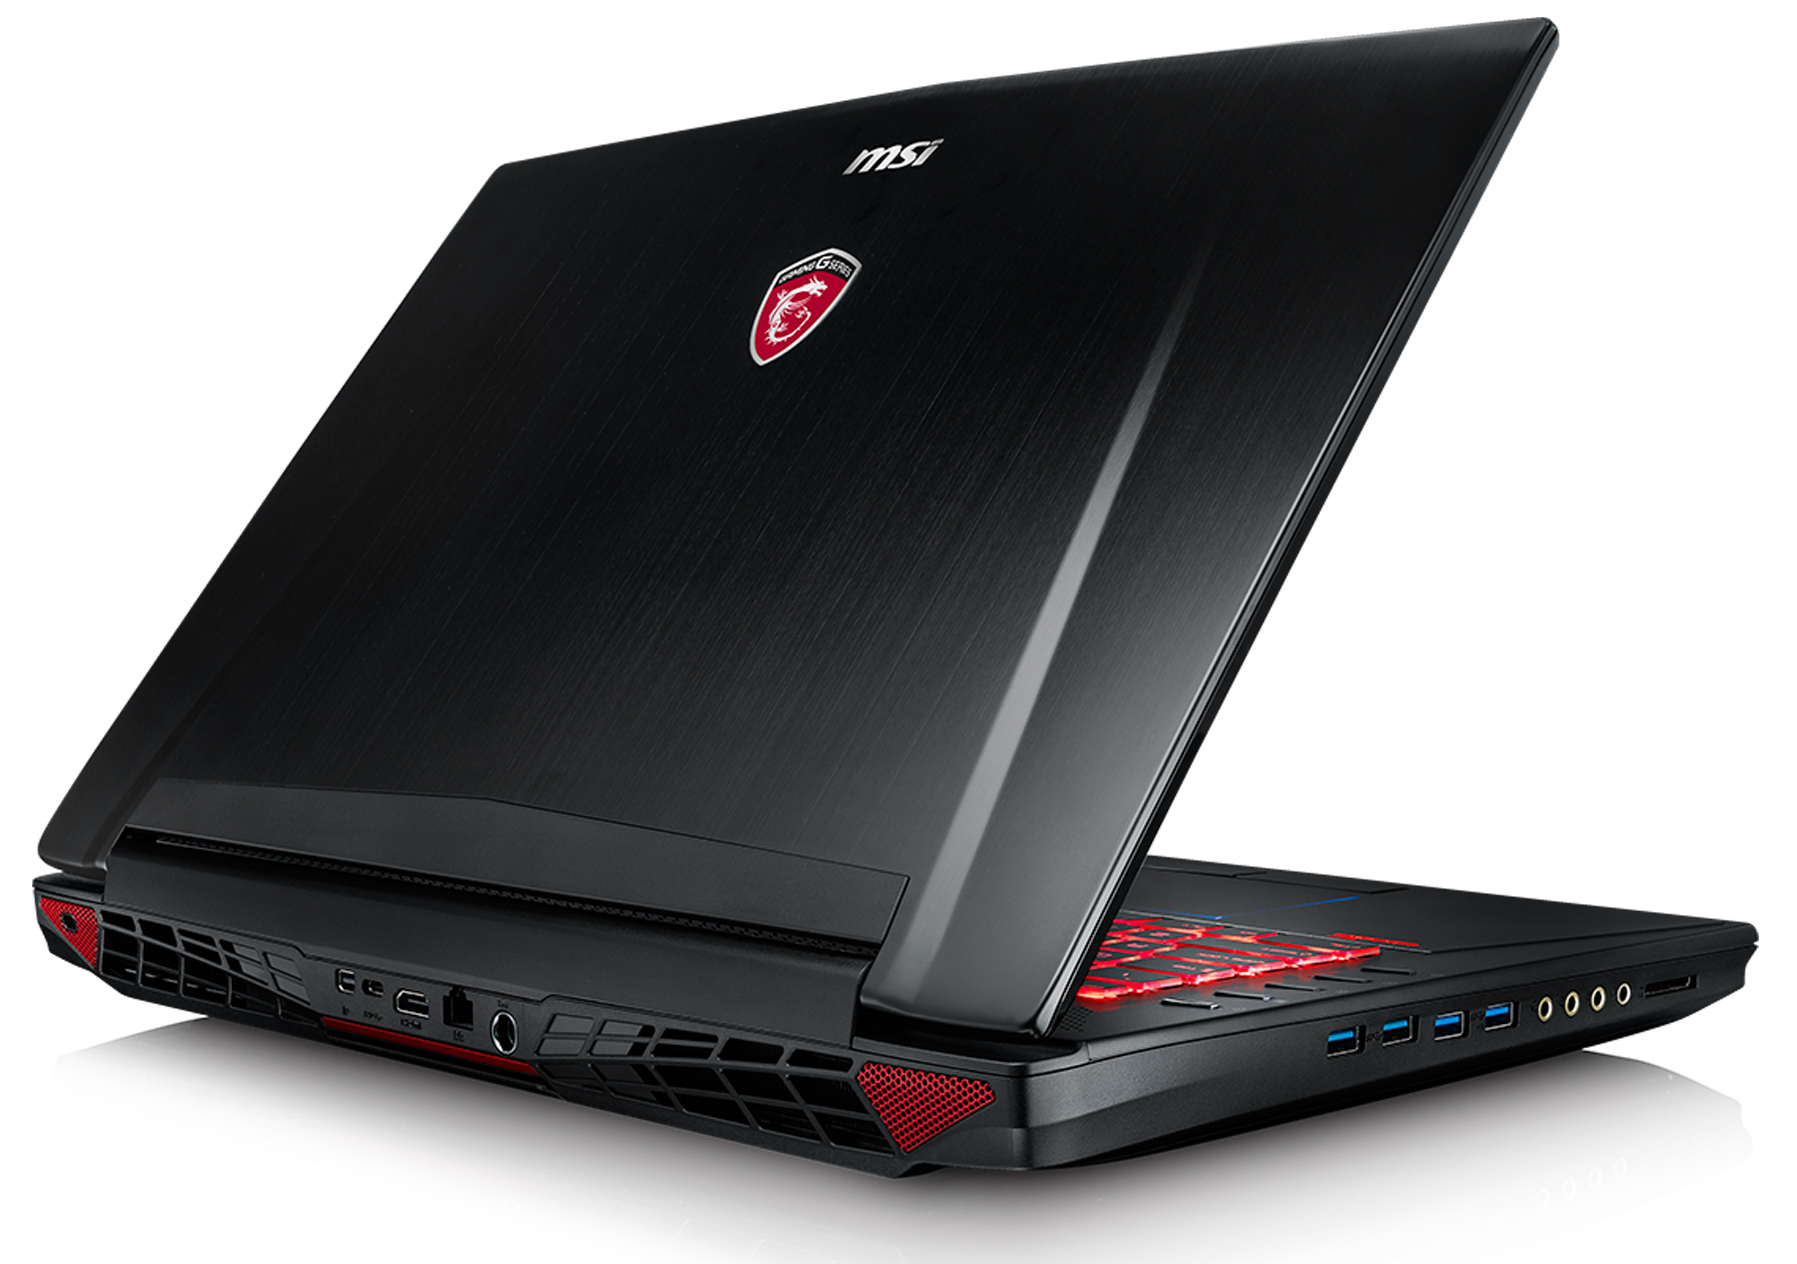 MSI GT72VR DOMINATOR REALTEK CARD READER DRIVERS FOR WINDOWS 7